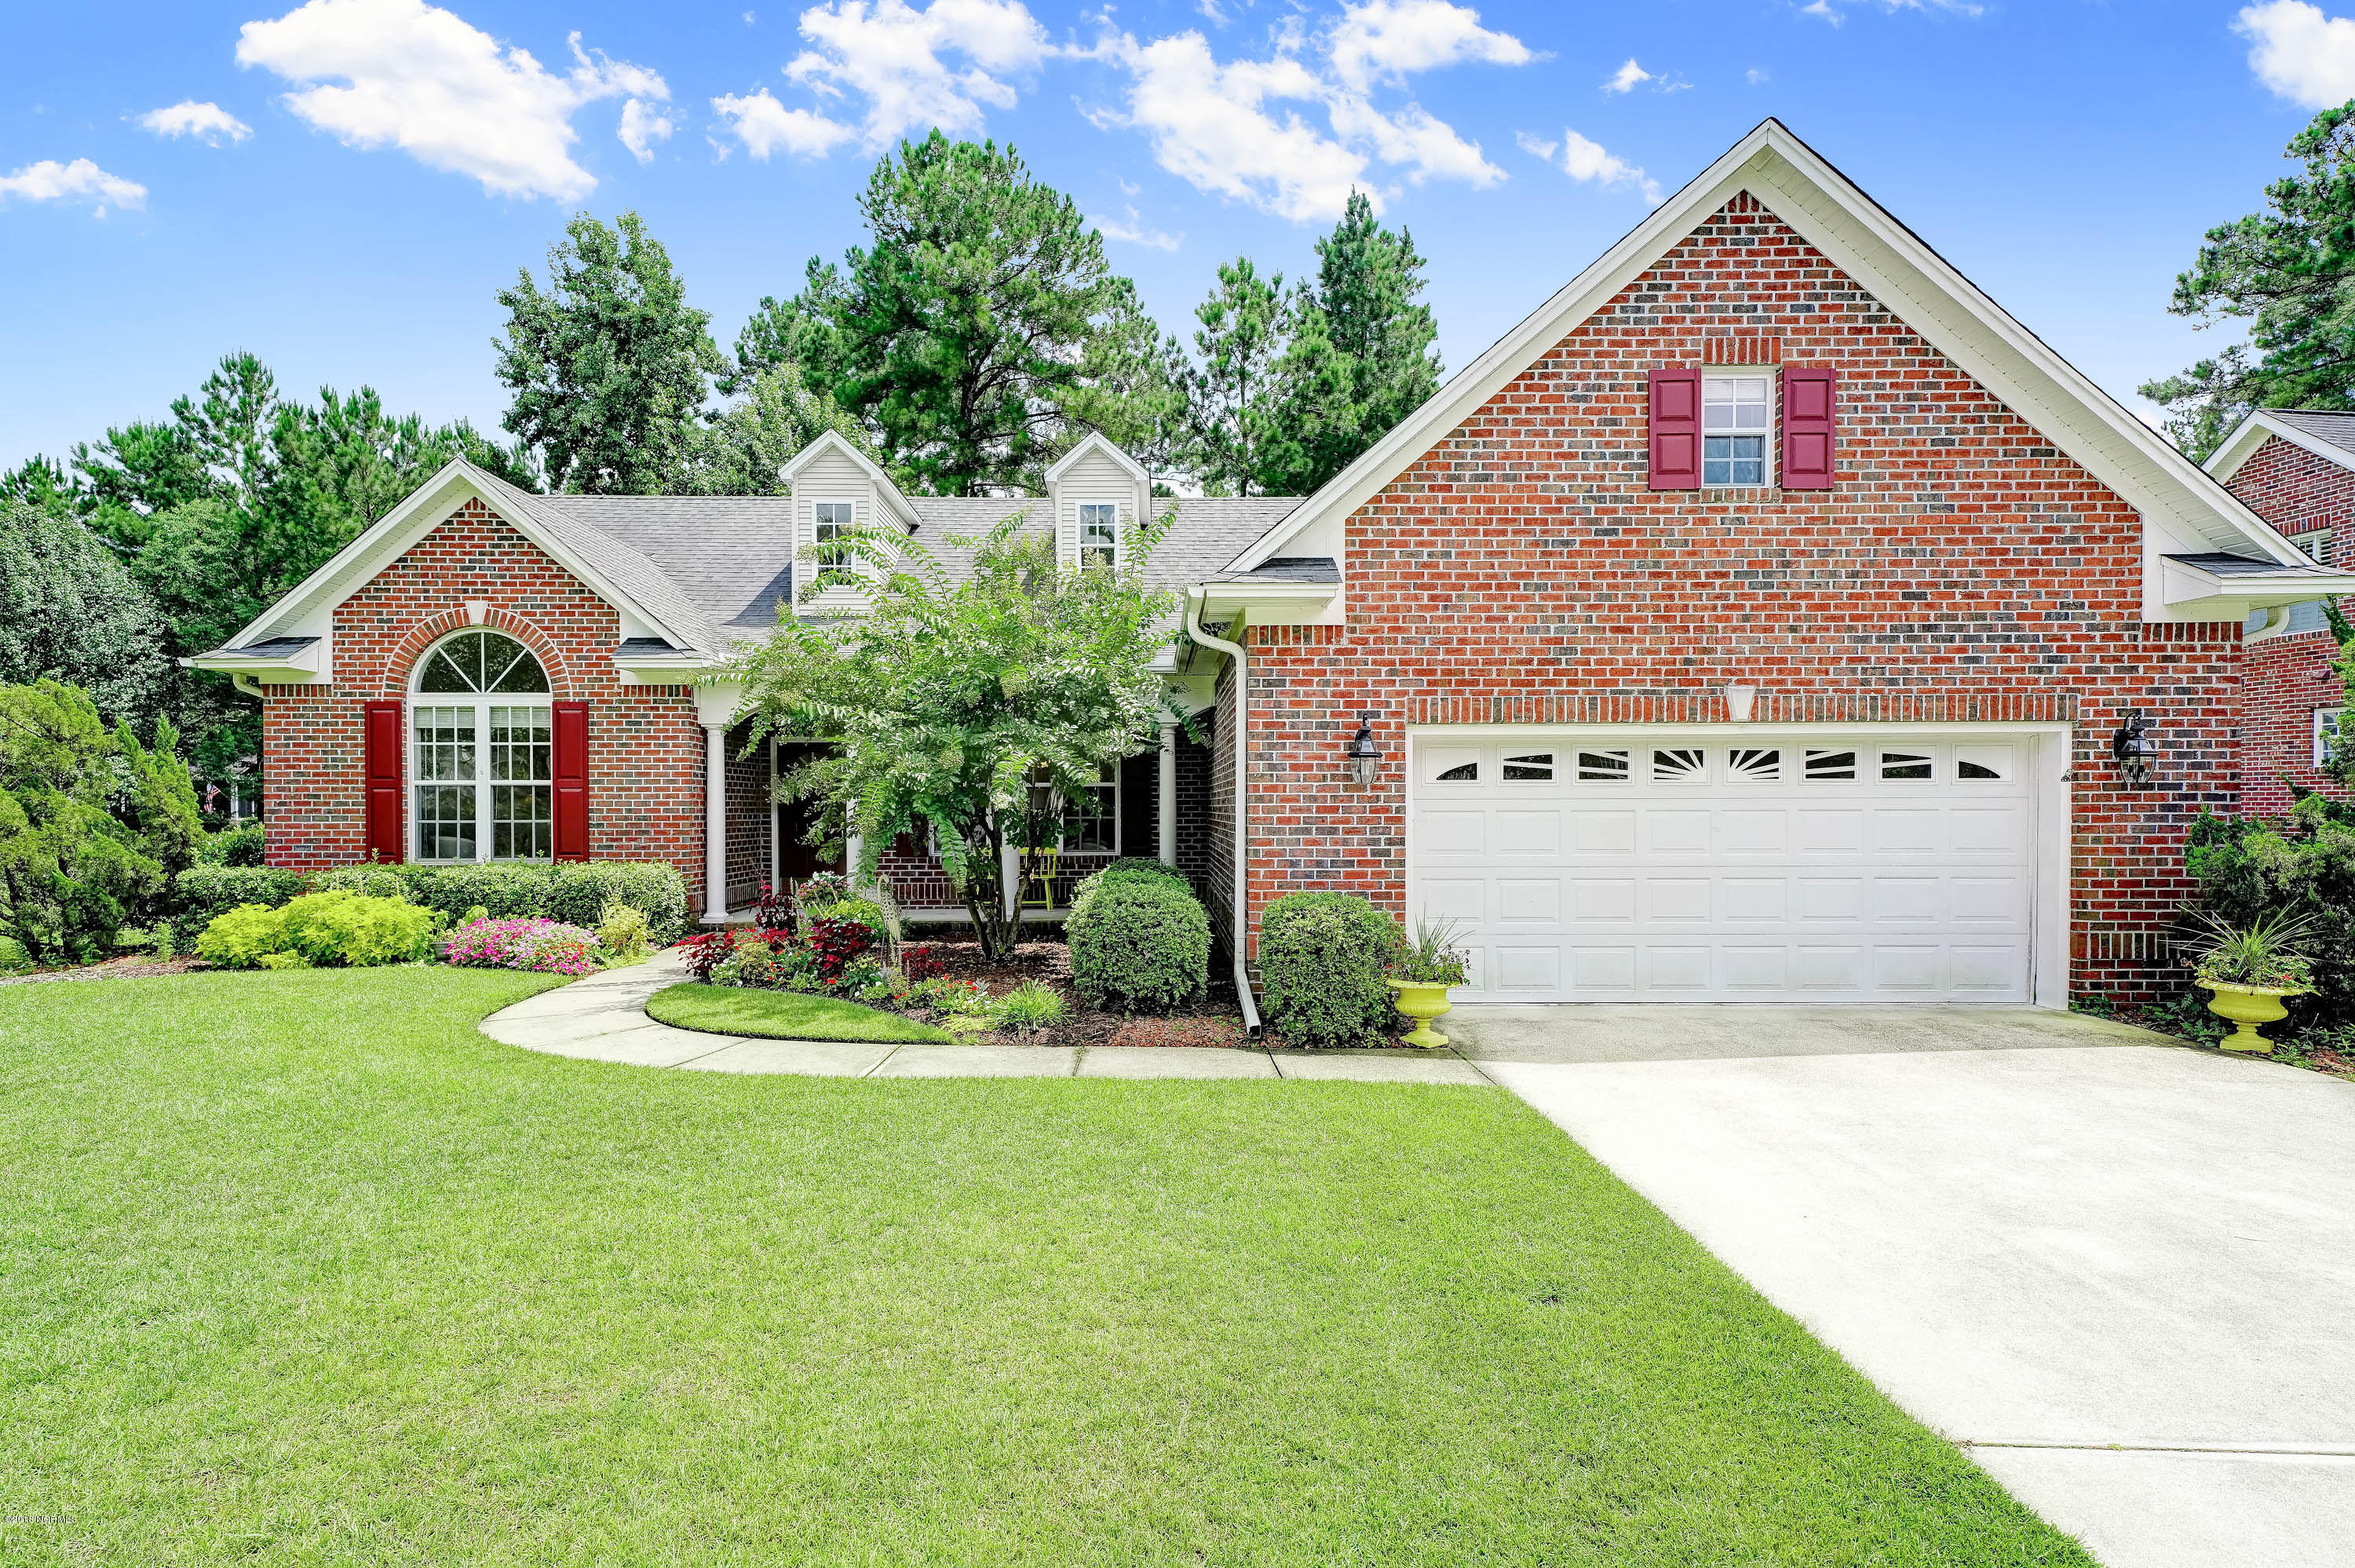 1157 Willow Pond Lane Leland, NC 28451